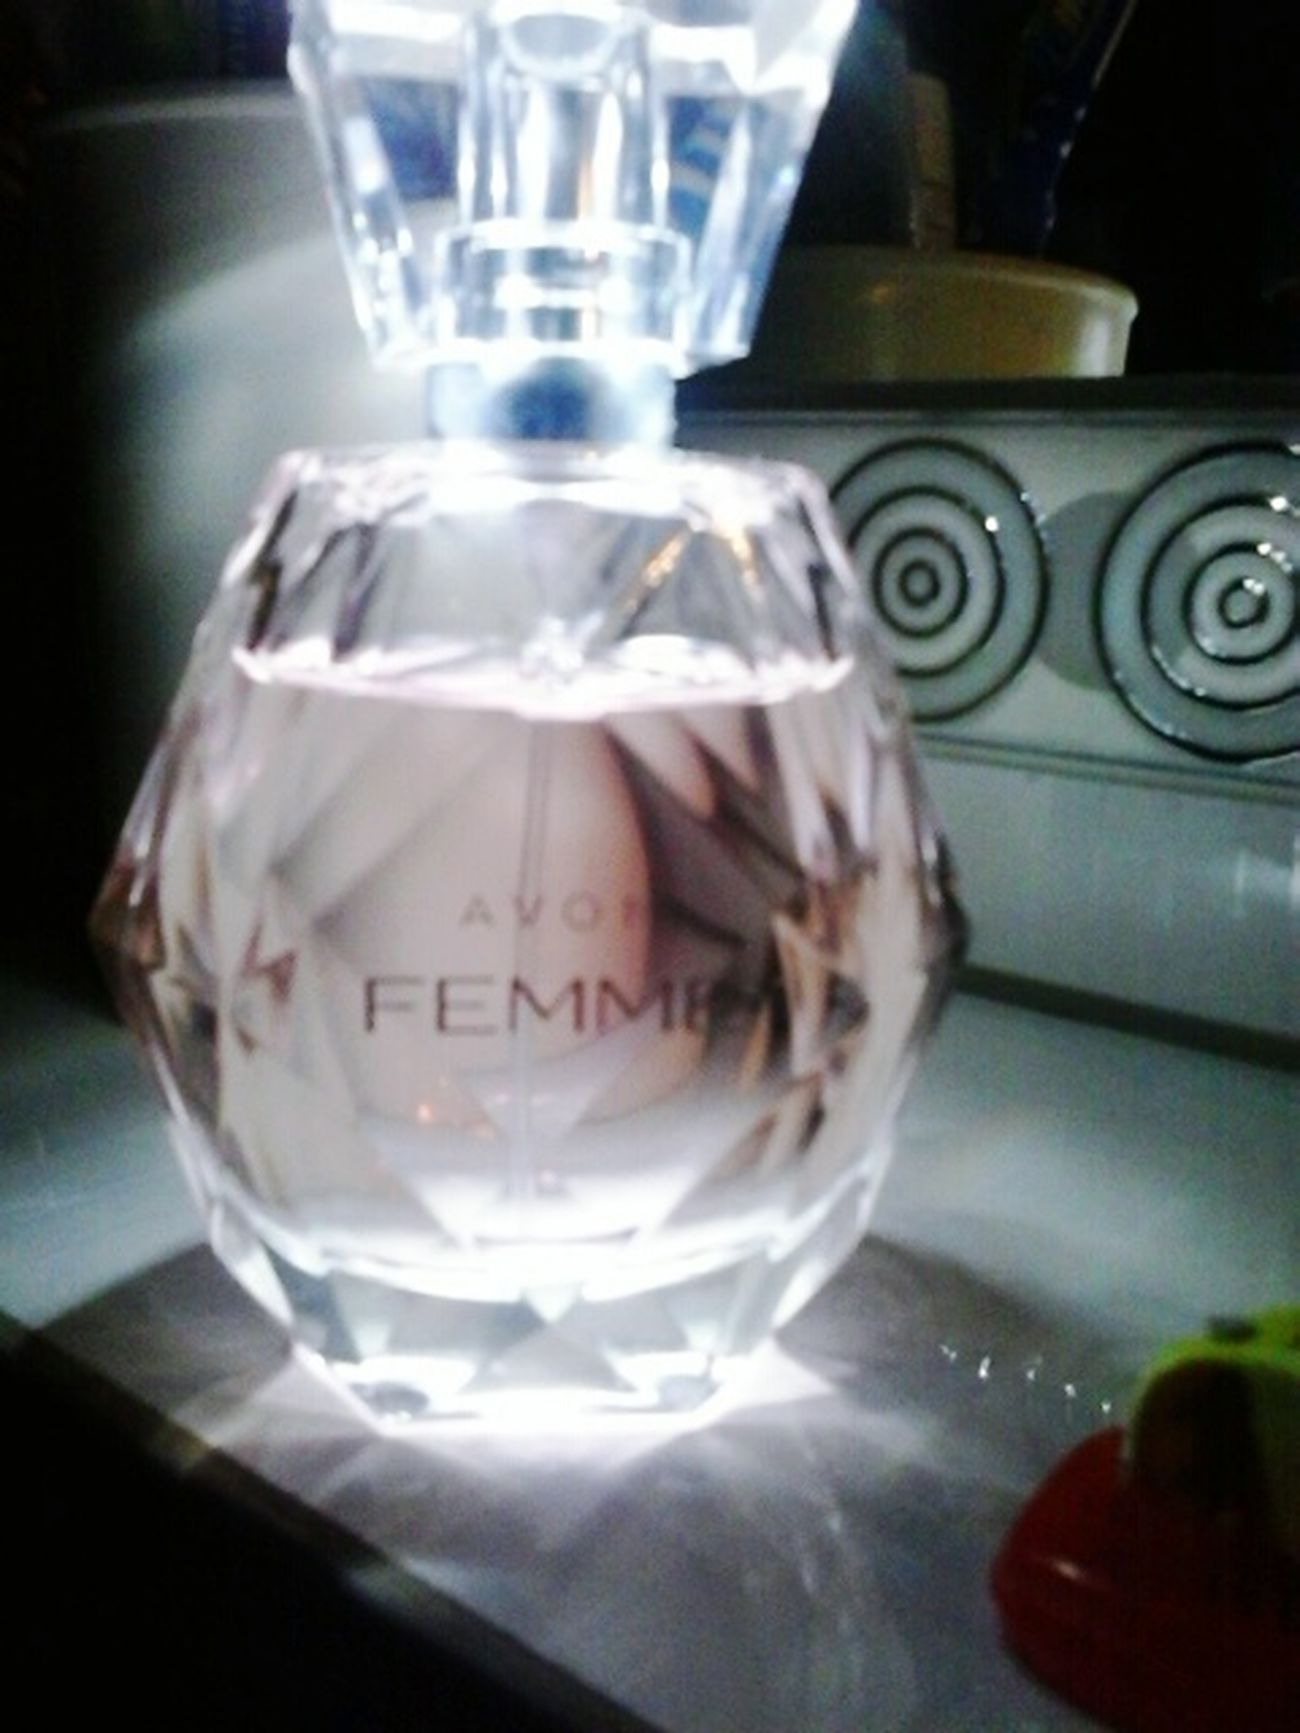 ♥ Favorite Perfume ♥ Perfumeobsession ♥ Loveit ♥